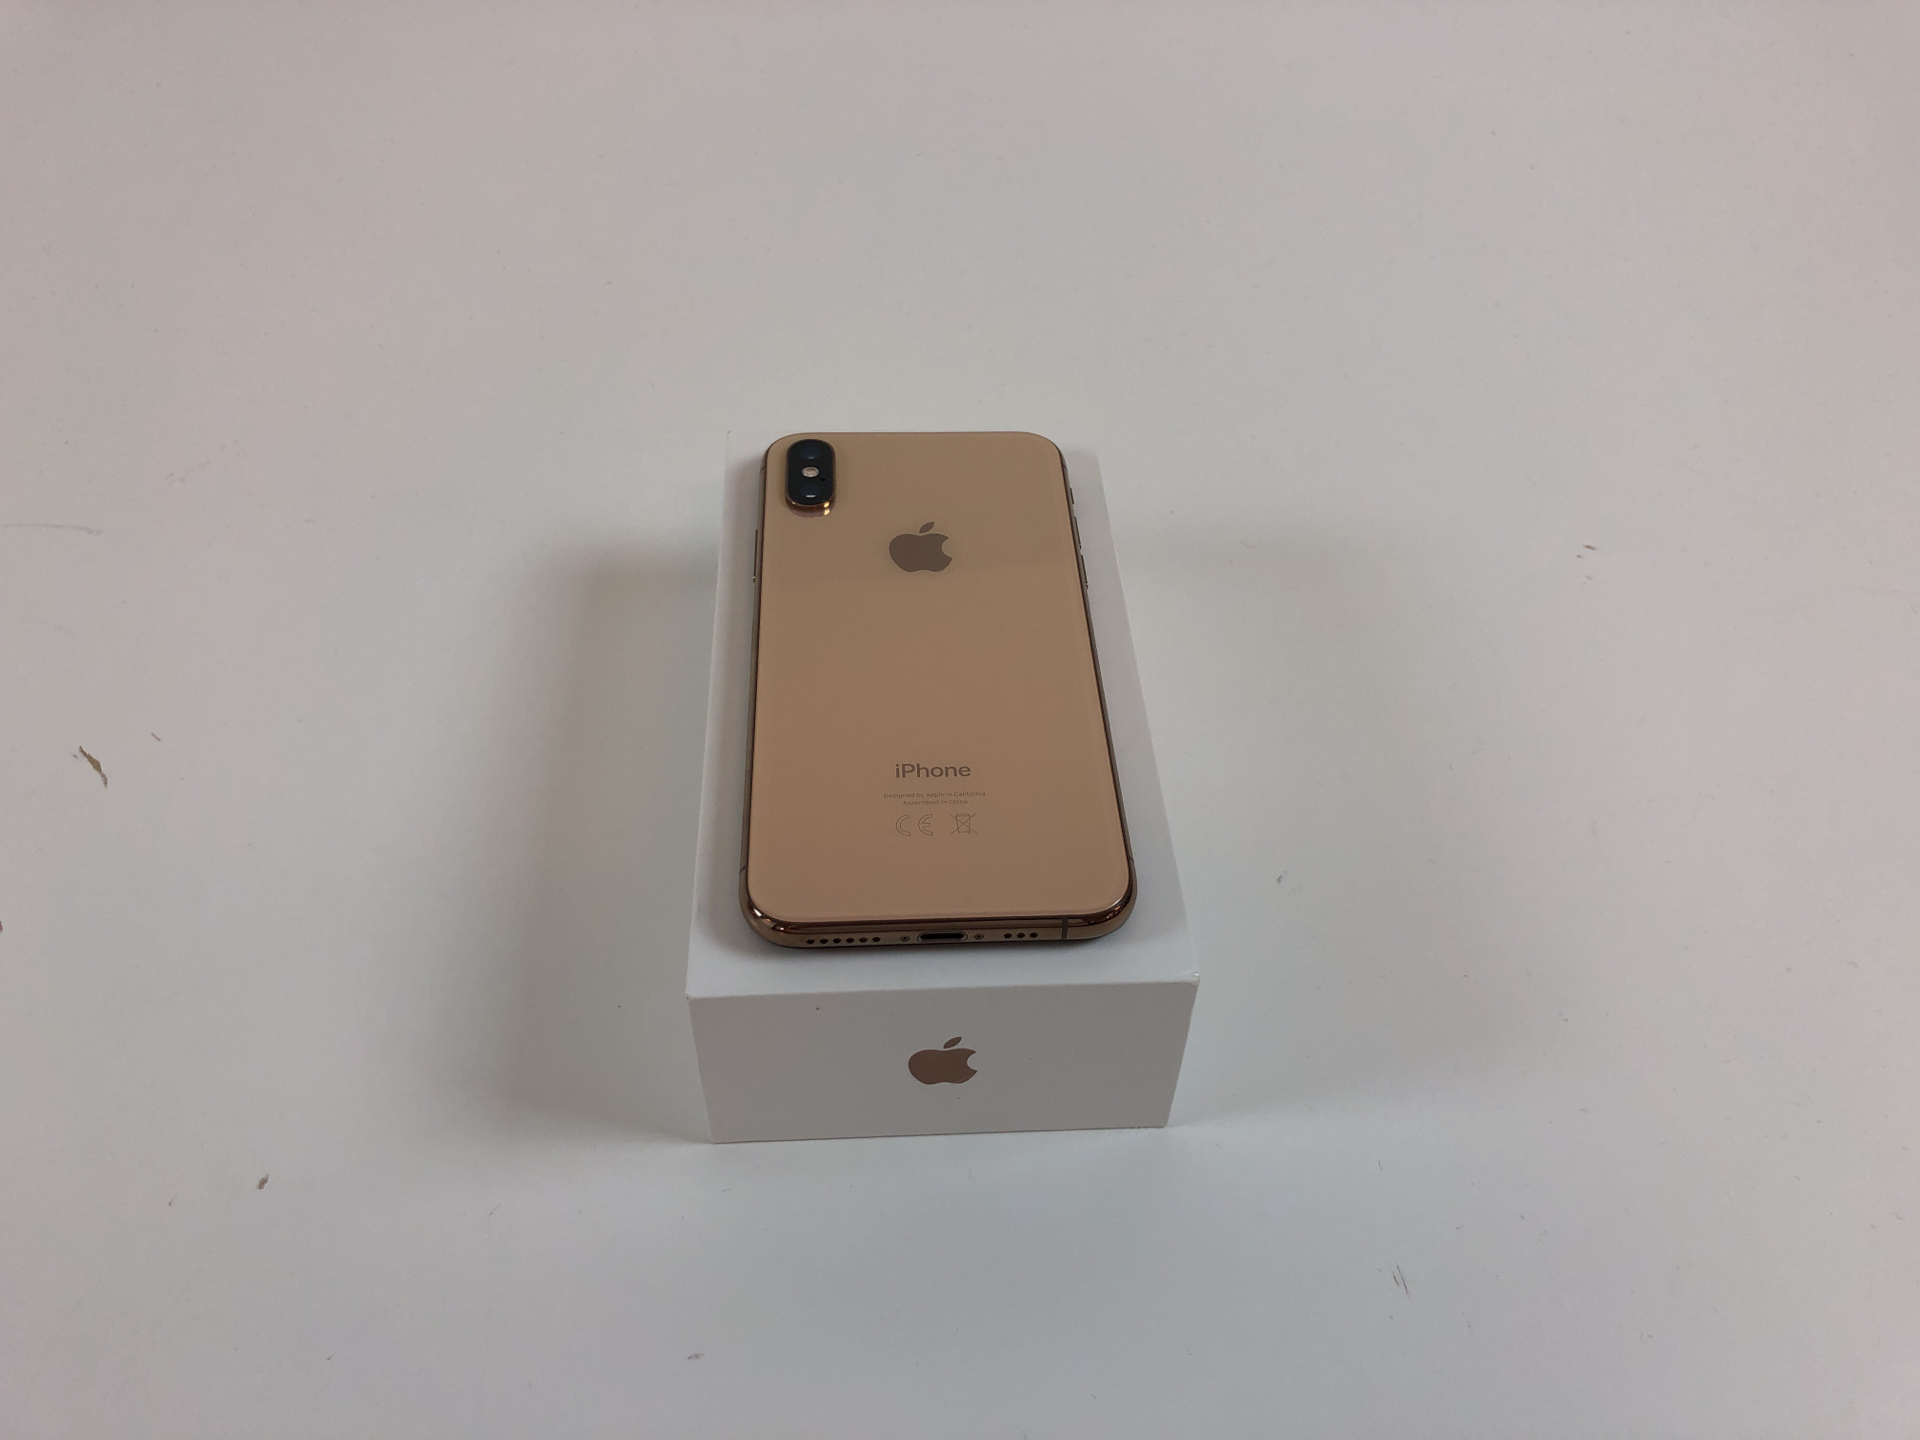 iPhone XS 64GB, 64GB, Gold, obraz 3